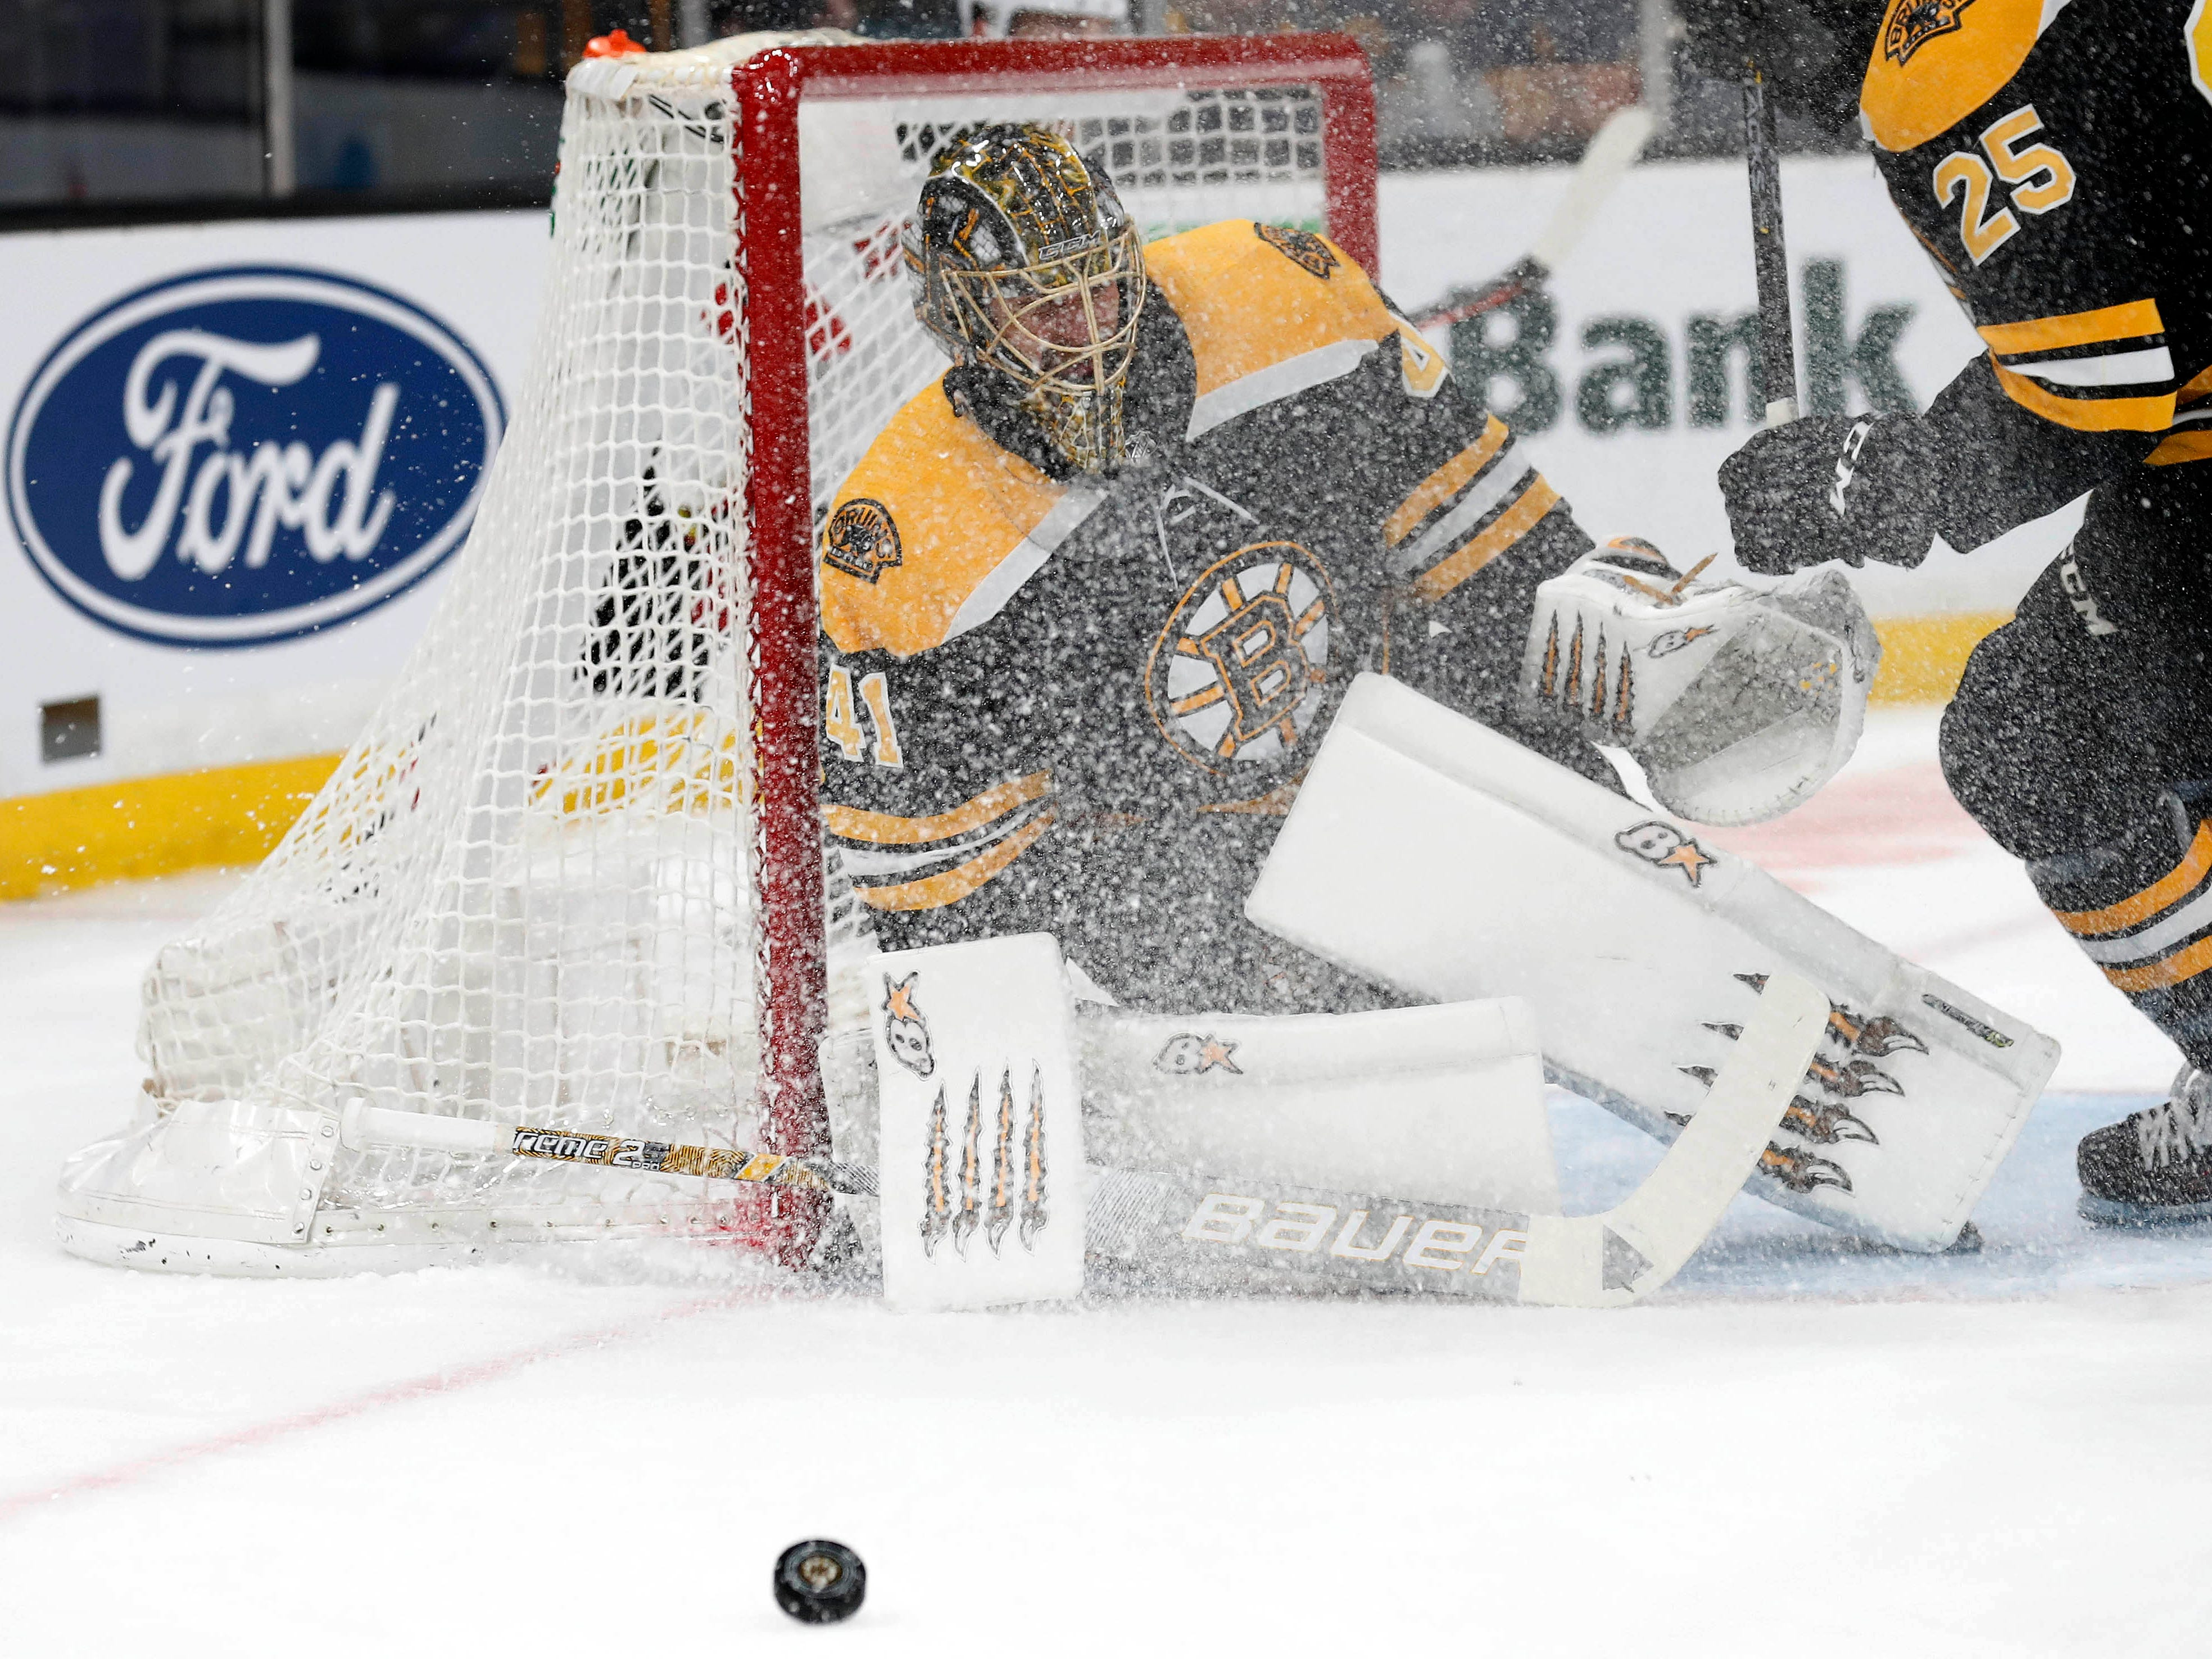 Dec 27, 2018; Boston, MA, USA; Boston Bruins goaltender Jaroslav Halak (41) keeps an eye on the rebound after being sprayed with ice during the first period against the New Jersey Devils at TD Garden.